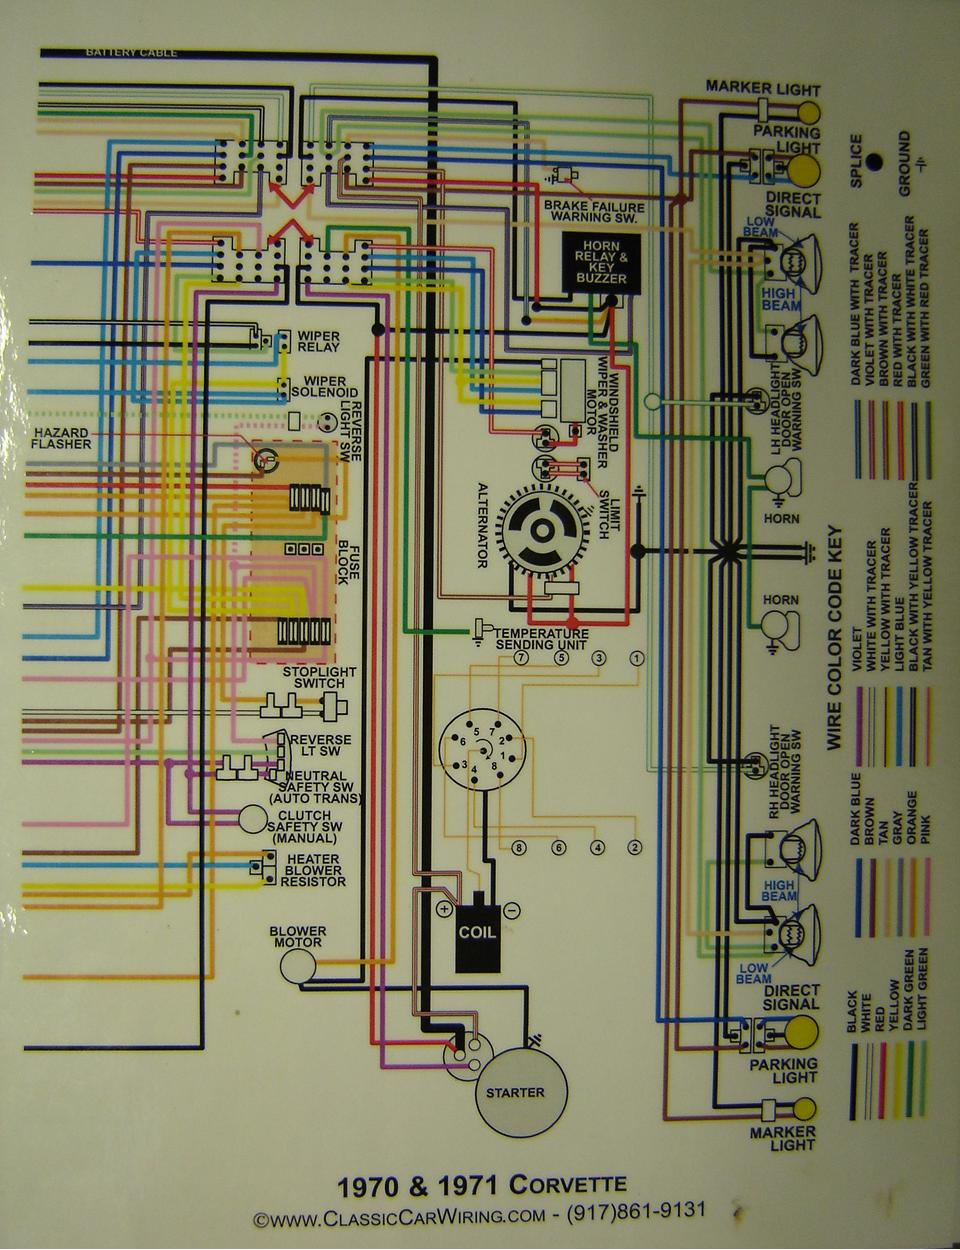 hight resolution of 71 nova wiring diagram wiring diagram ebook 71 nova wiring harness